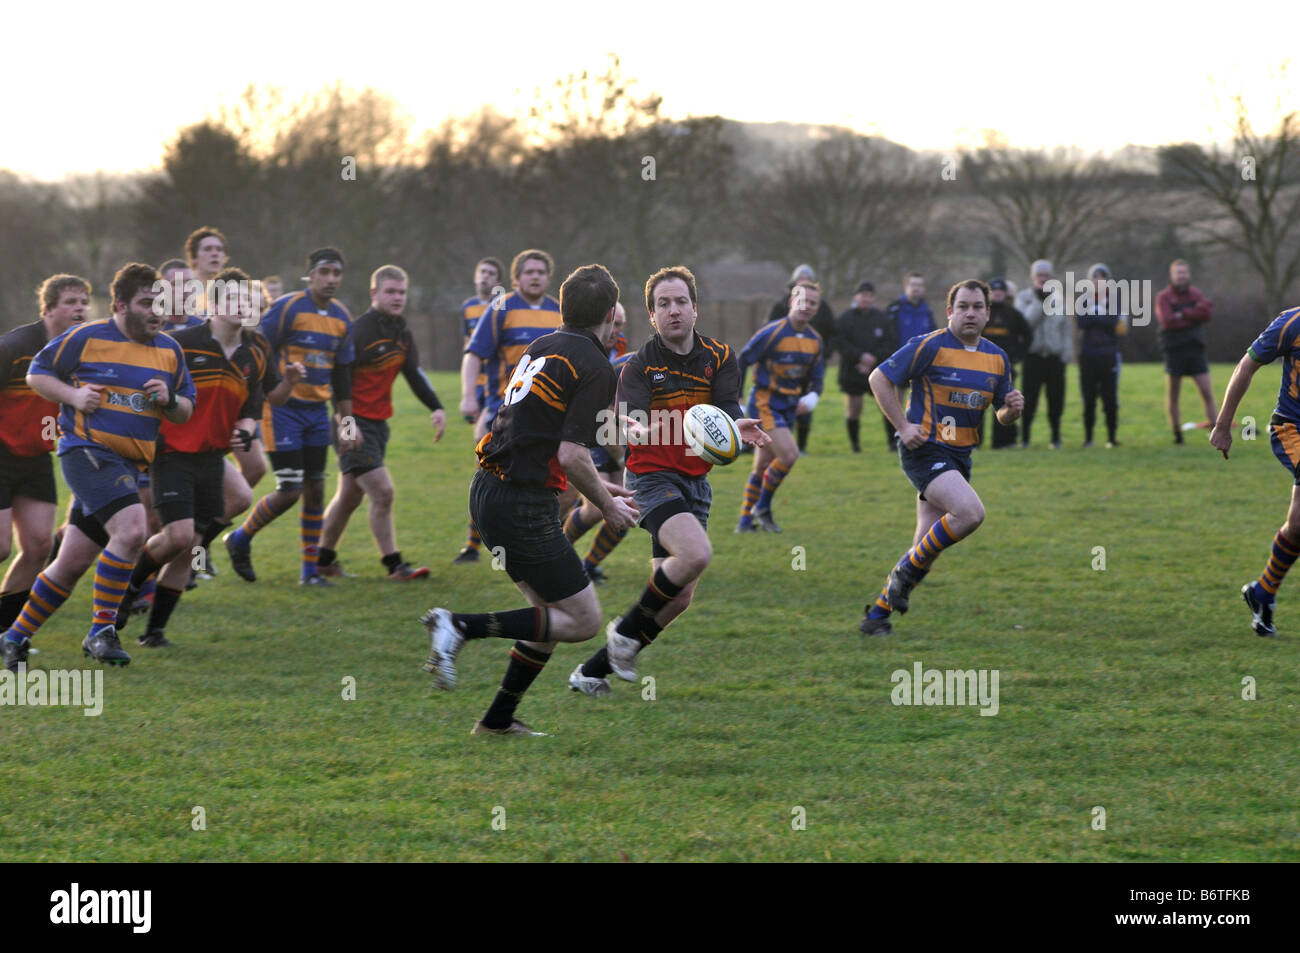 Au niveau des clubs de rugby, Leamington Spa, Angleterre, RU Photo Stock